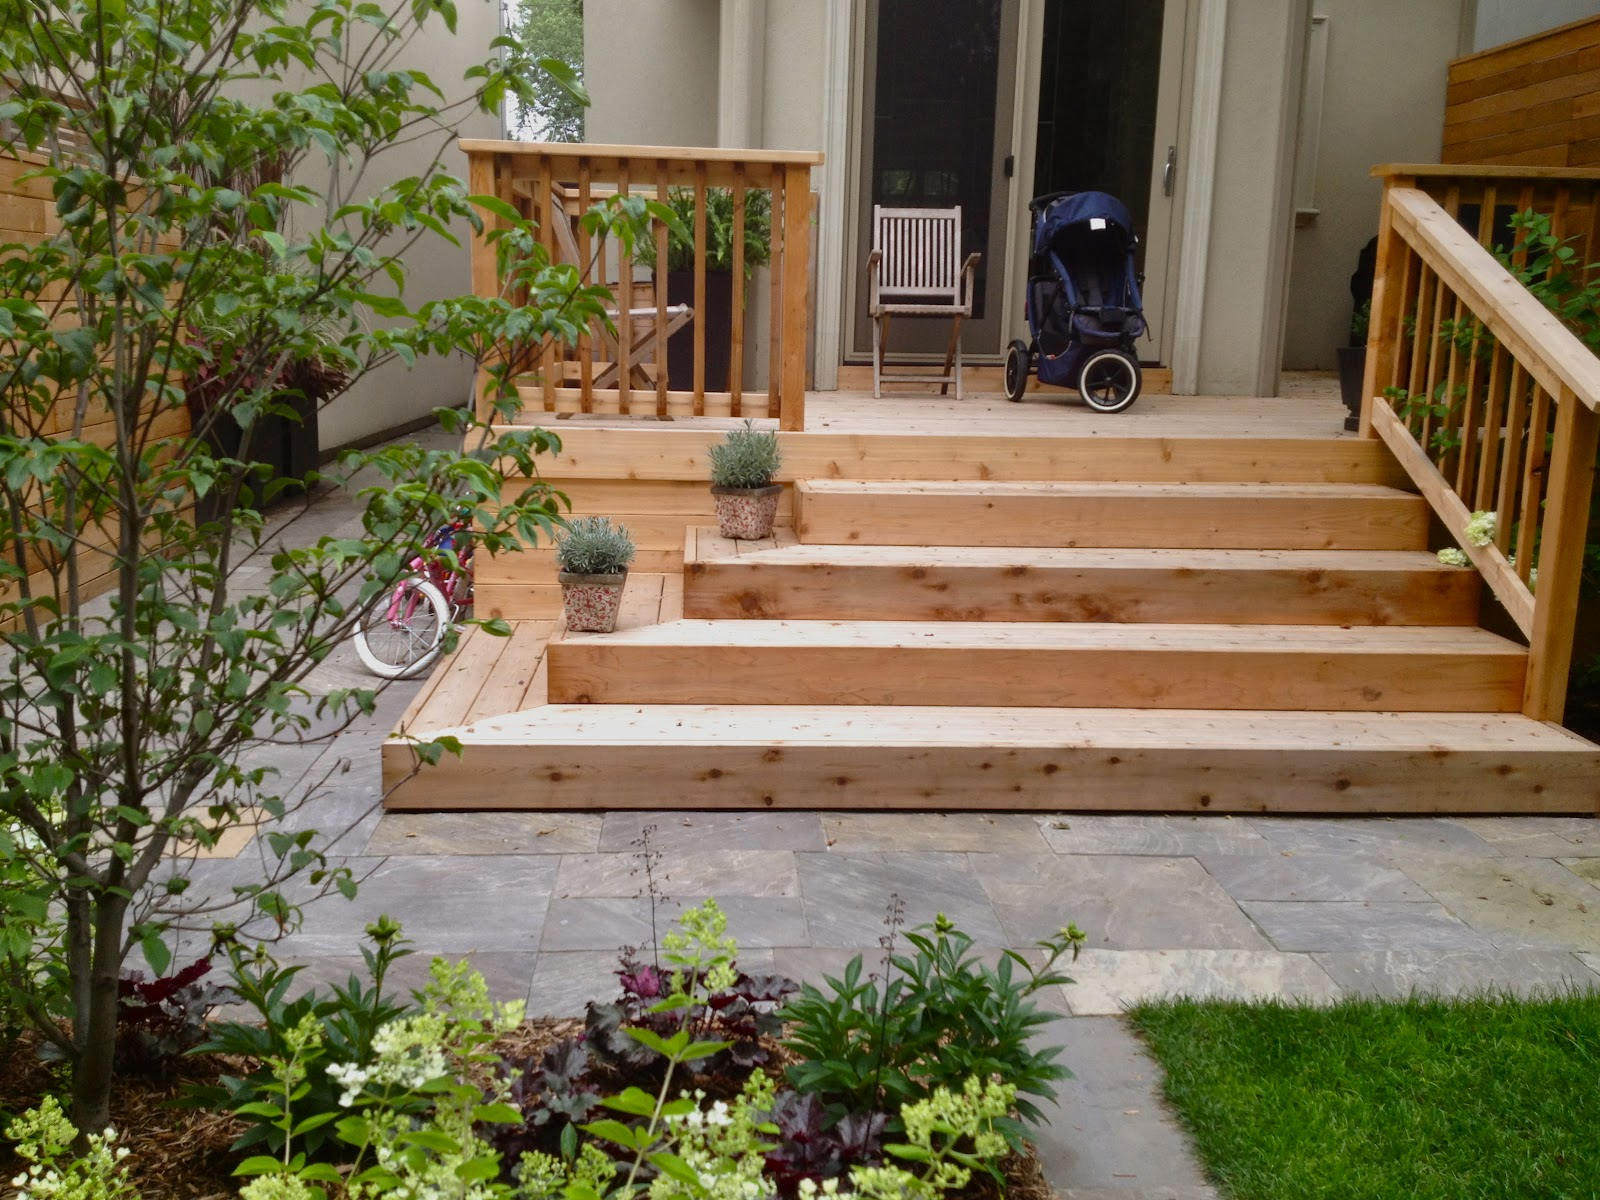 Exteriors For Living: Leaside Garden Room on Backyard Stairs Ideas id=16041